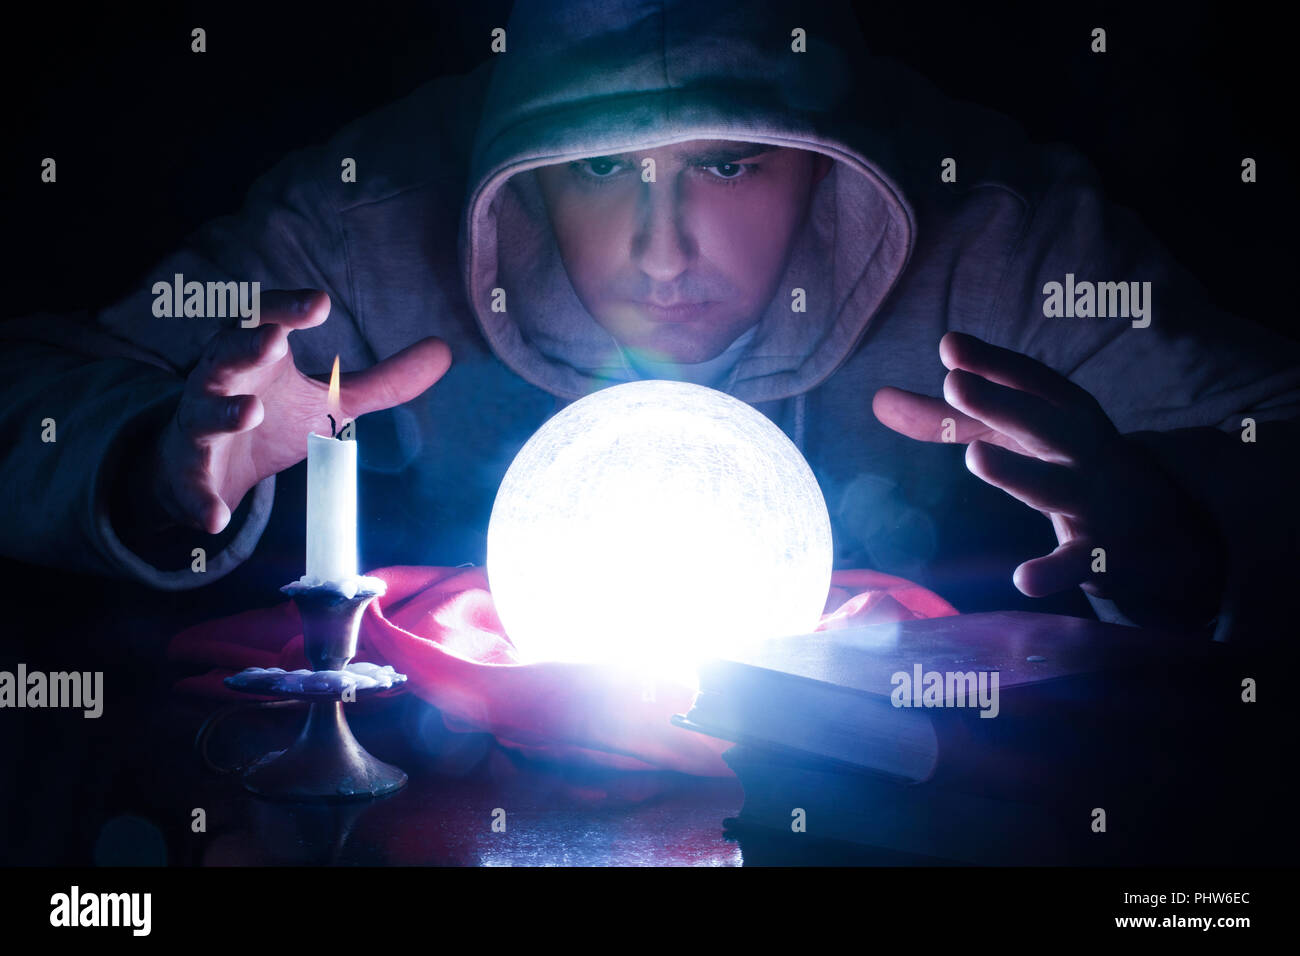 Wizard with magic glowing orb and hand holding above a glass of light, candle and candle stick and book on desk. Sorcerer who predicts destiny - Stock Image